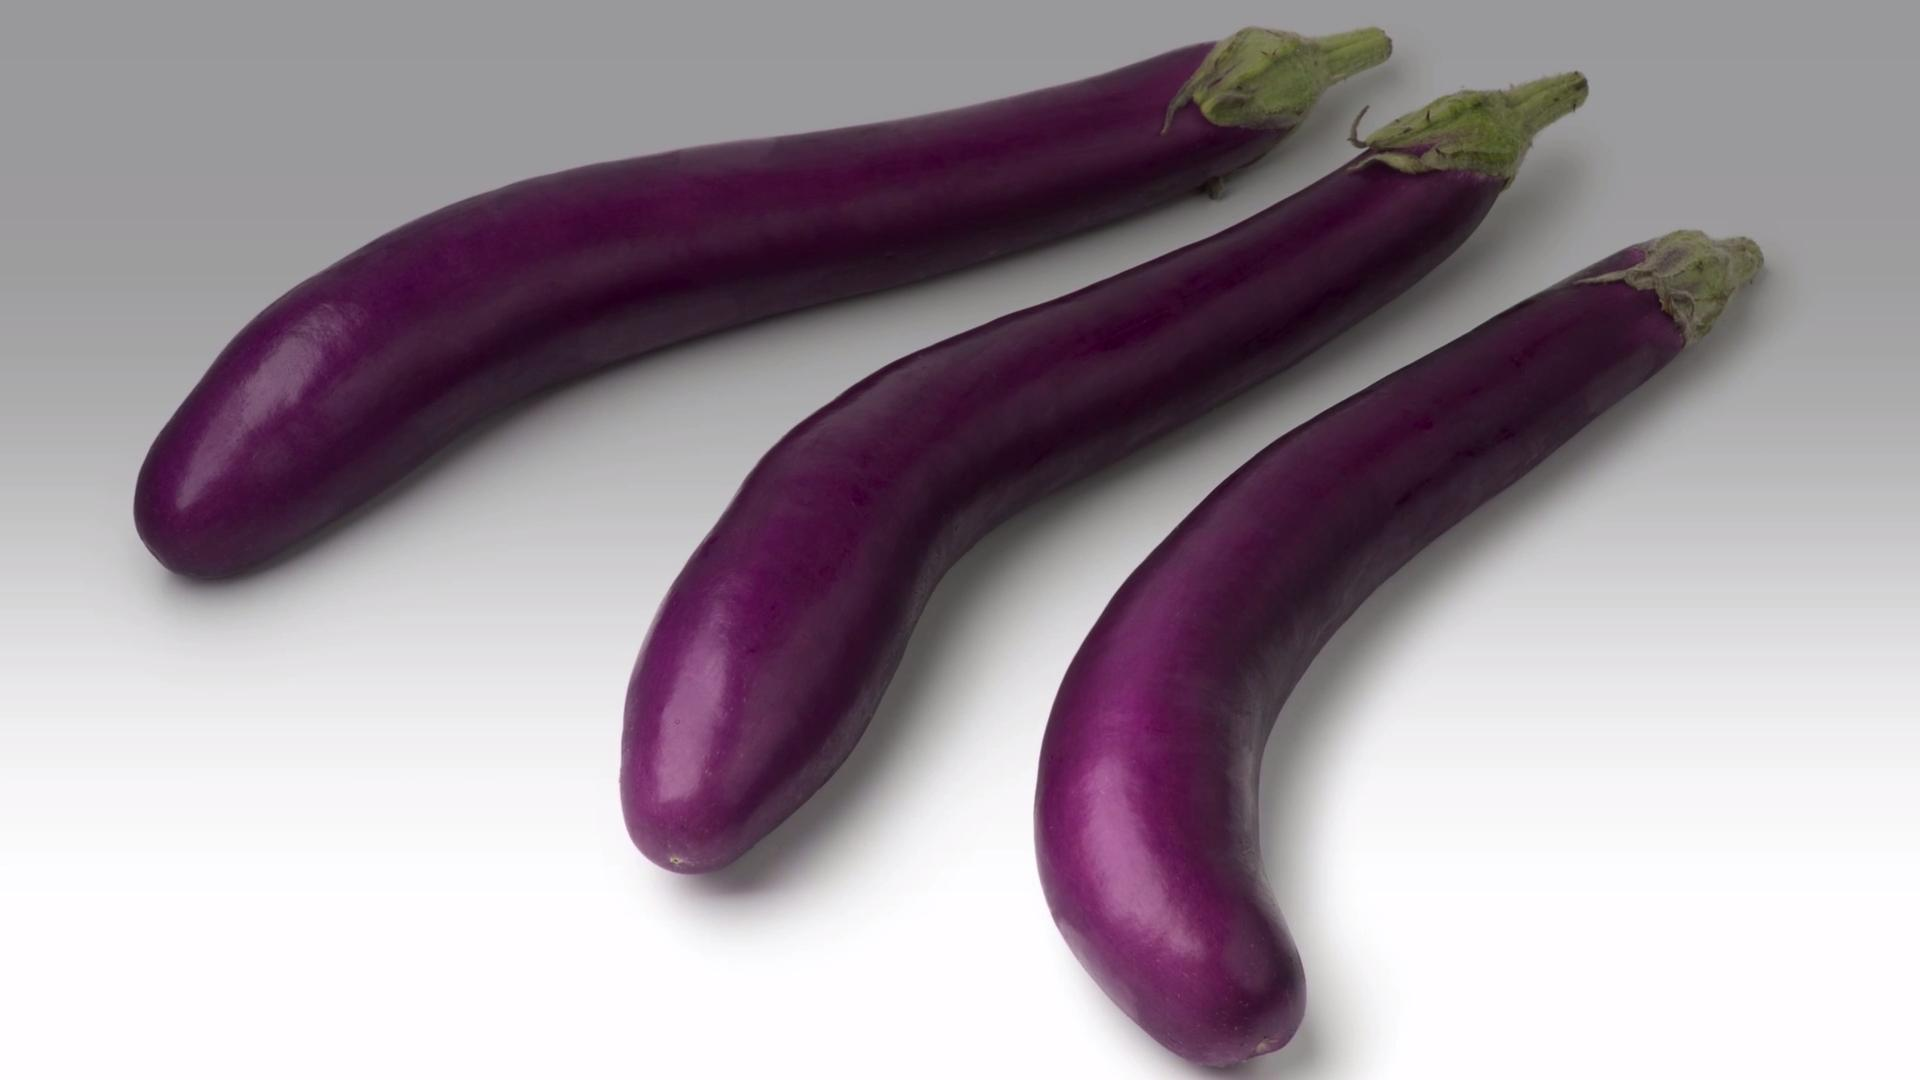 10 Types of Eggplant—and What to Do With Them